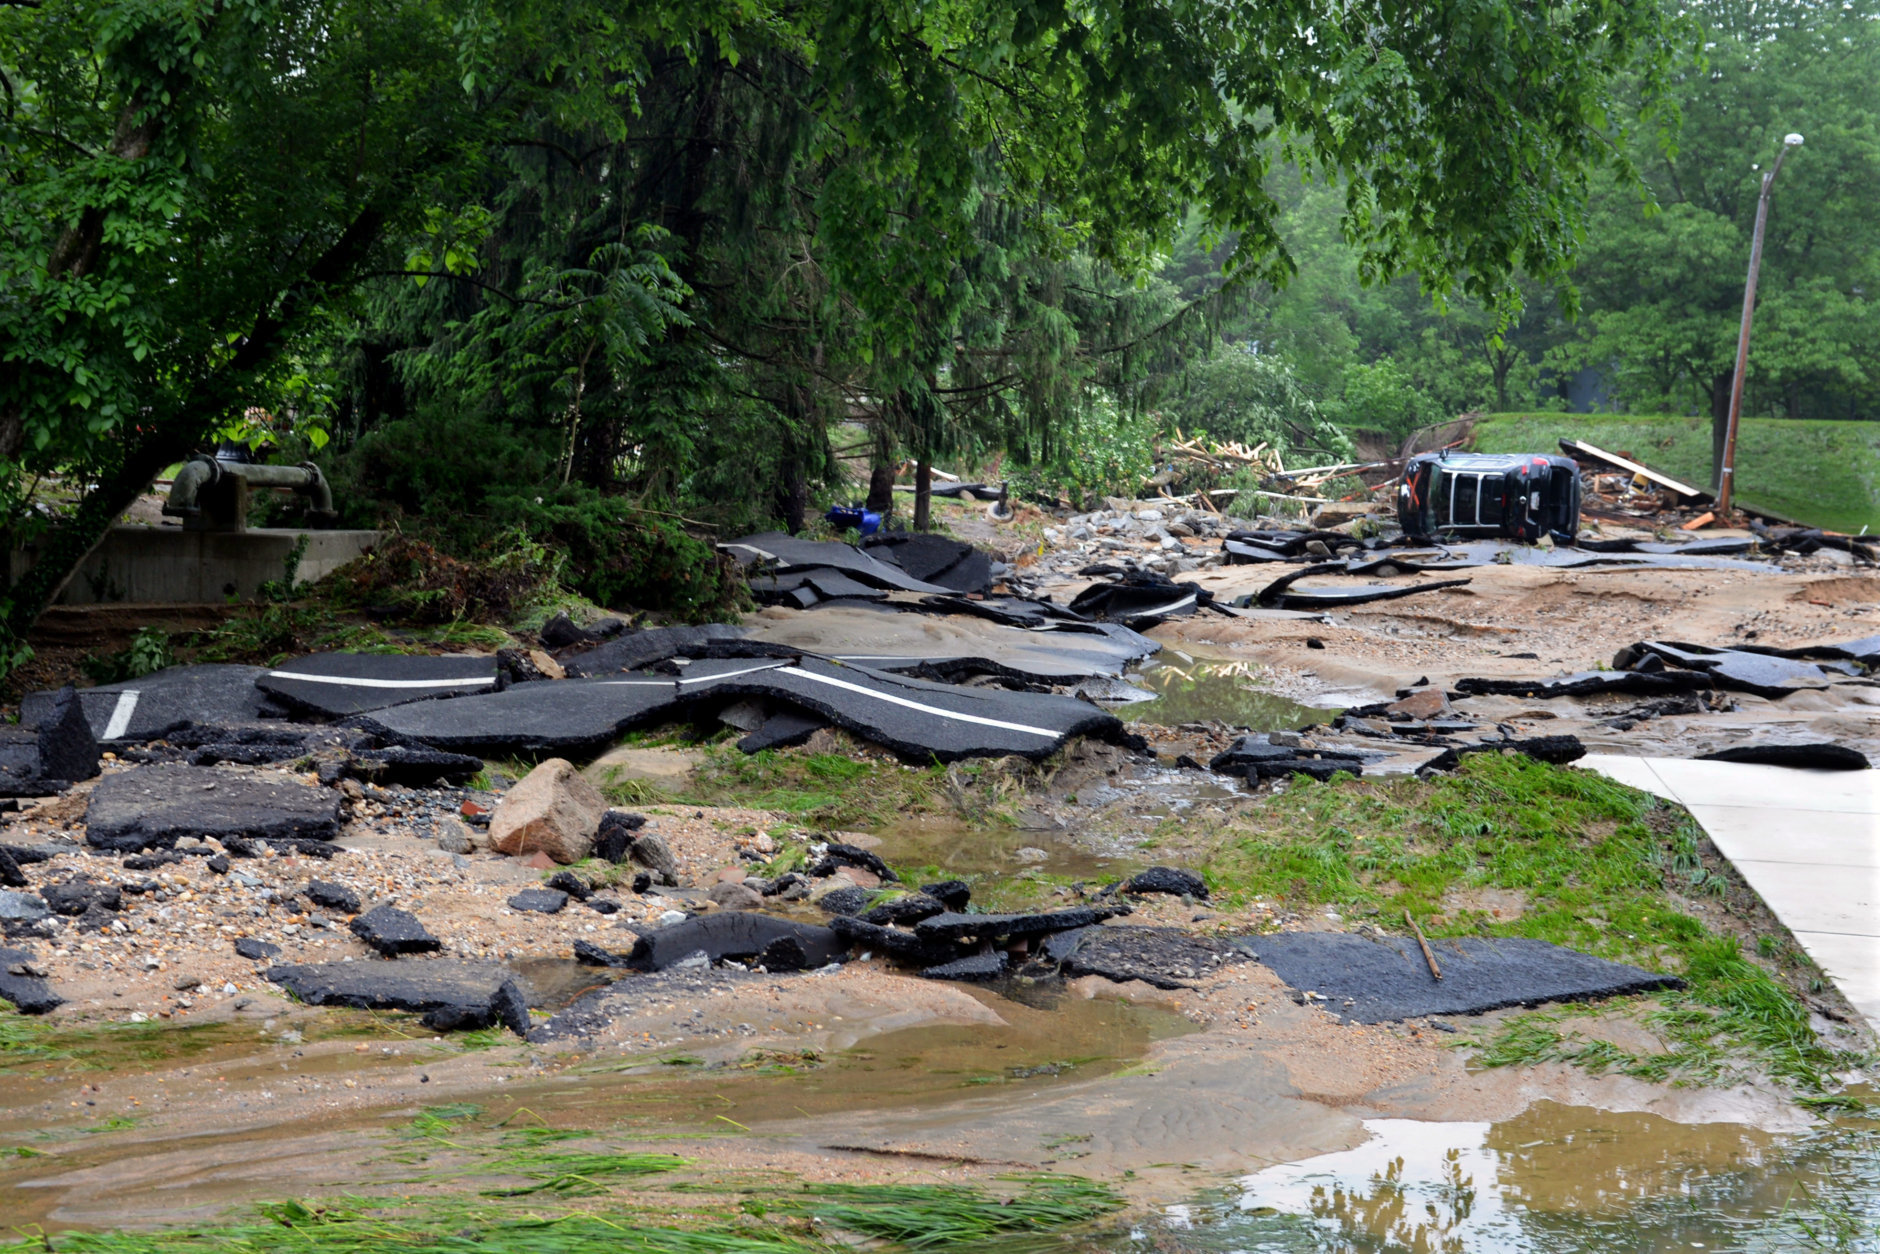 Destroyed chunks of roadway rest after being washed into a riverbed just off Main Street in flood-ravaged Ellicott City, Md., Monday, May 28, 2018. Sunday's destructive flooding left the former mill town heartbroken as it had bounded back from another destructive storm less than two years ago. (AP Photo/David McFadden)